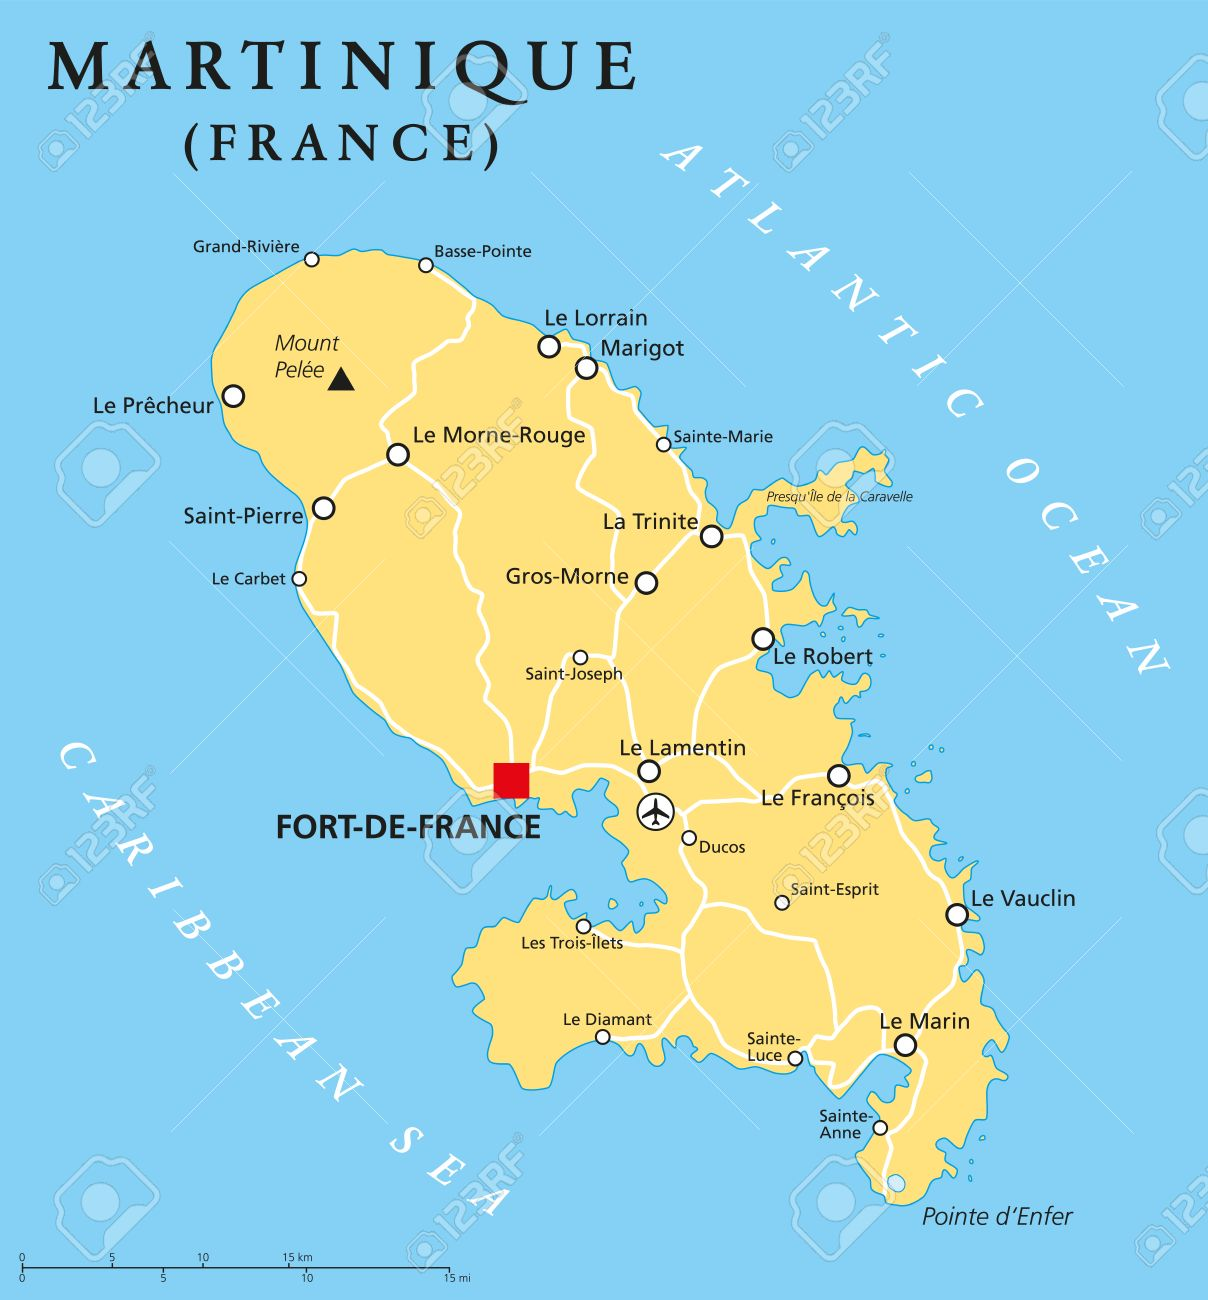 Martinique Political Map With Capital FortdeFrance And Important